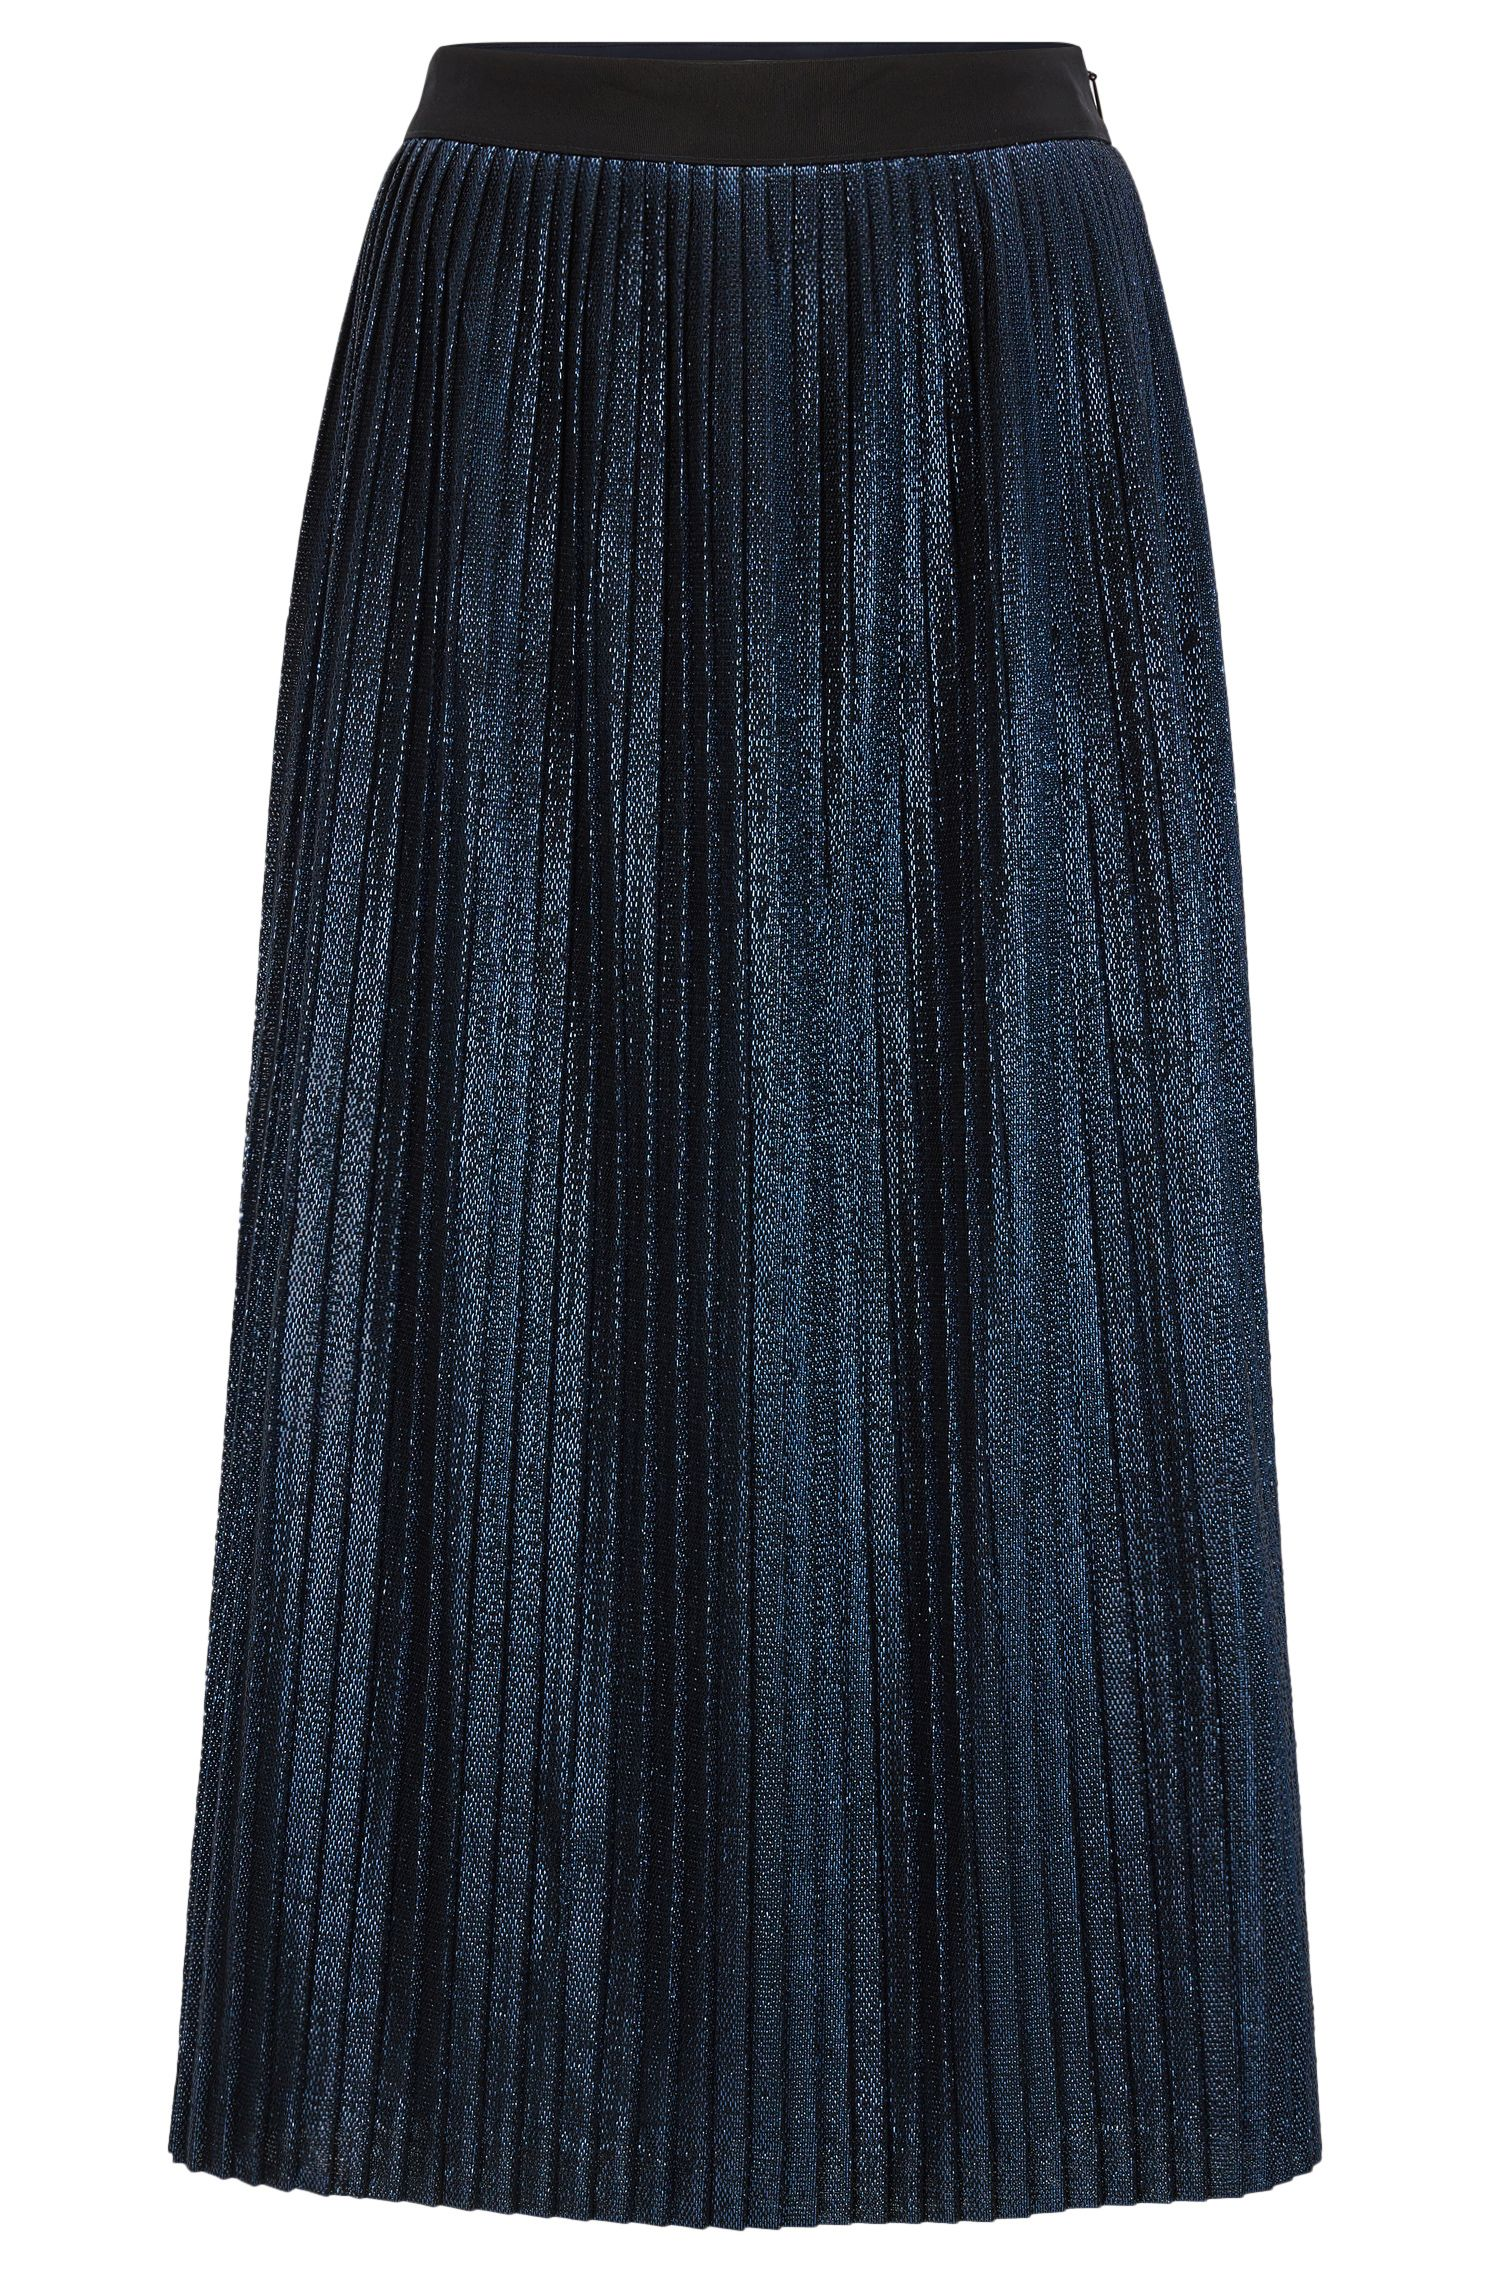 Pleated A-line midi-skirt in metallic fabric